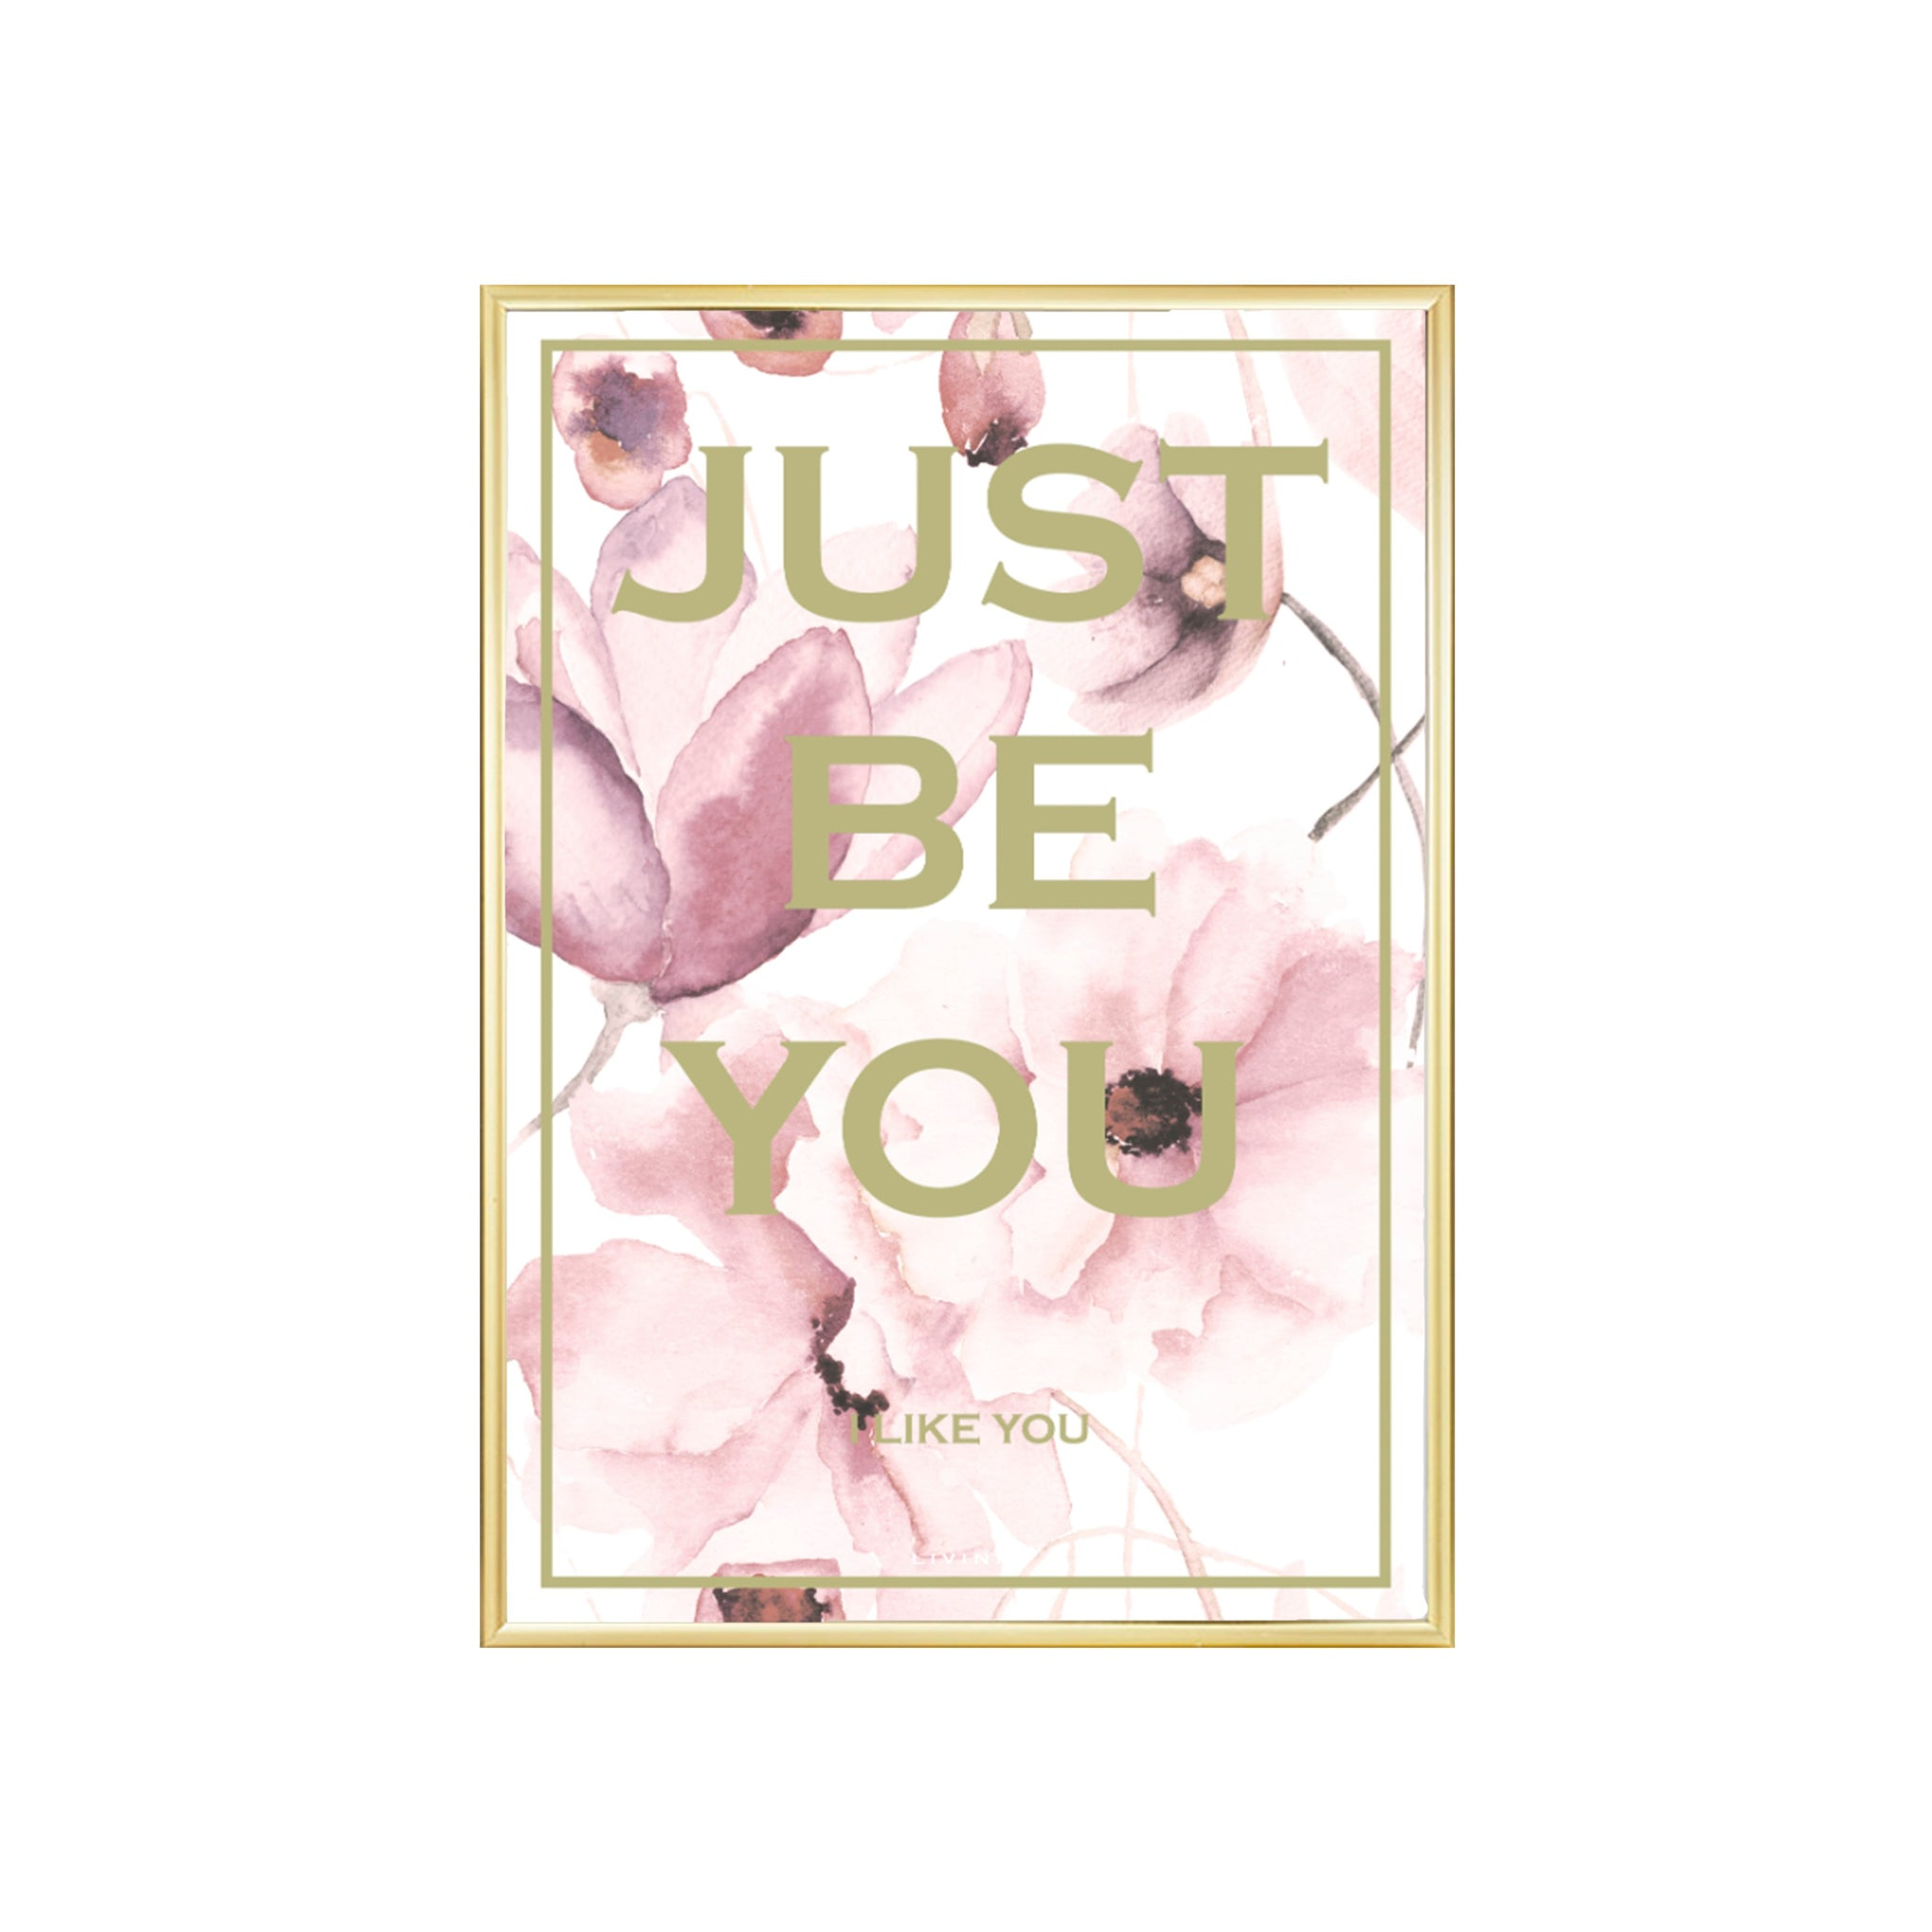 Just be you - flower rose - 50% rabat